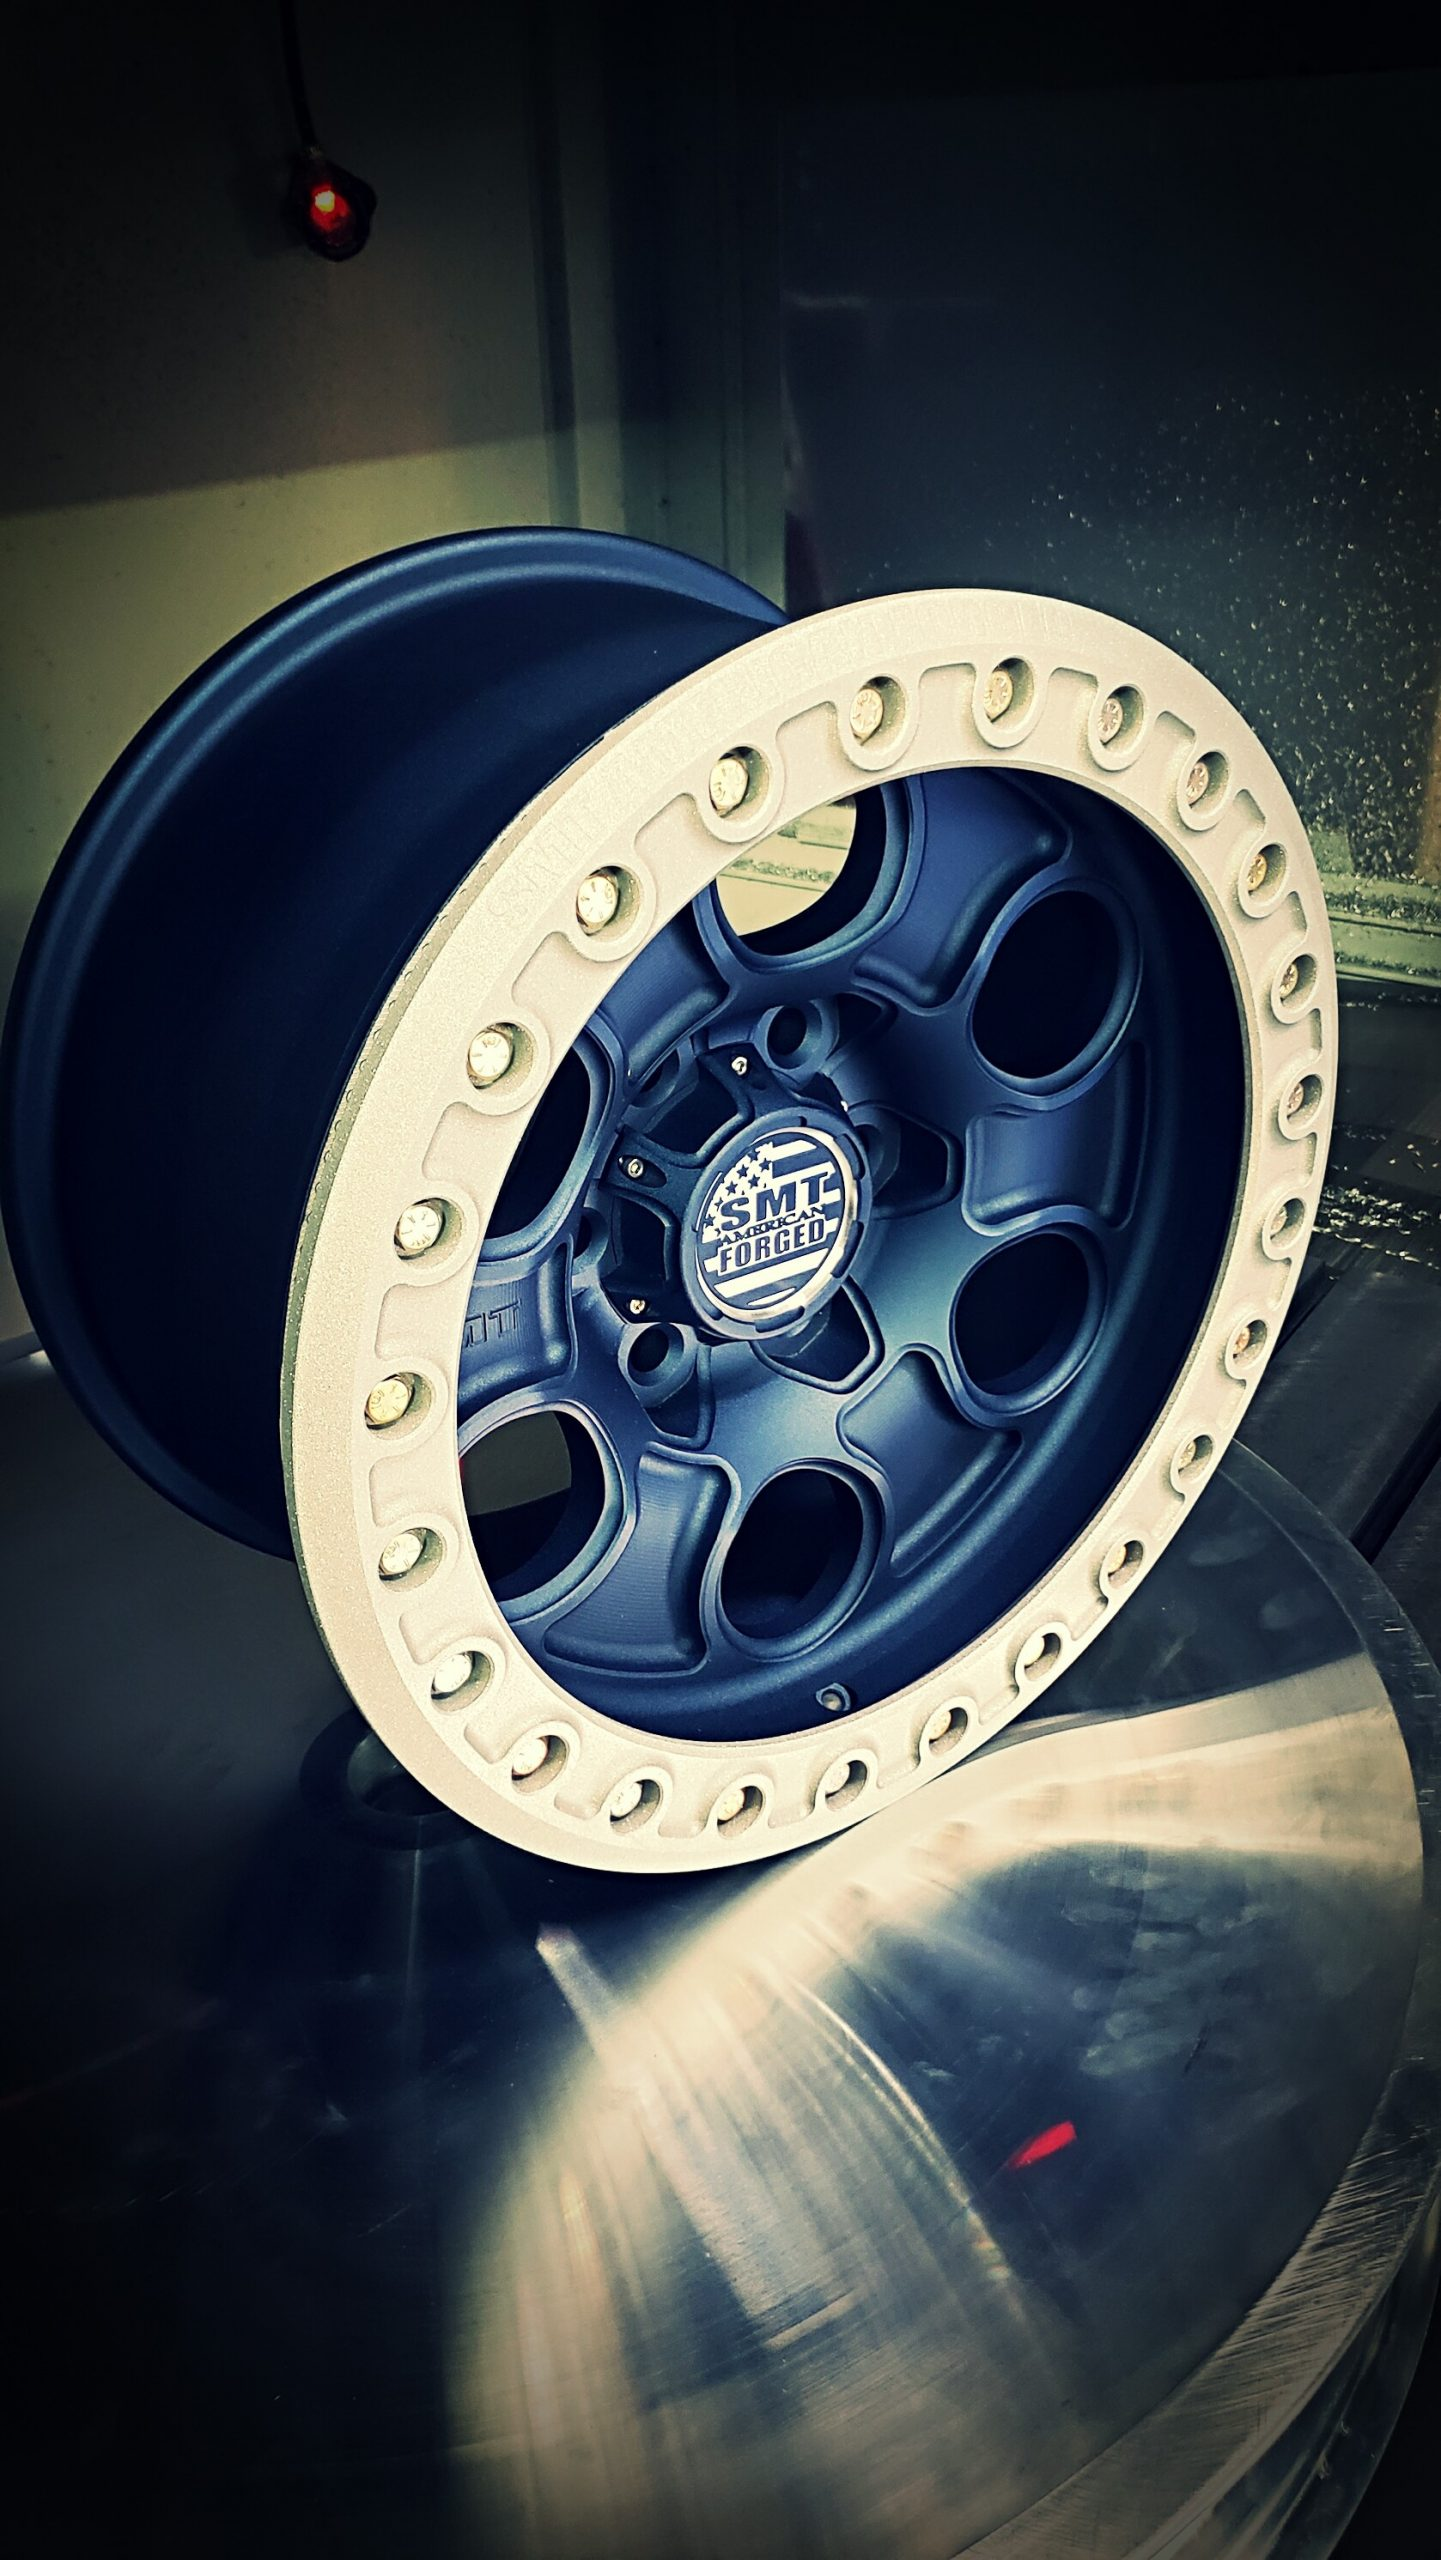 rs-2_beadlock_side_120_custom_blue_gray_powdercoat_smt_american_forged_off_road_forged_aluminum_wheels